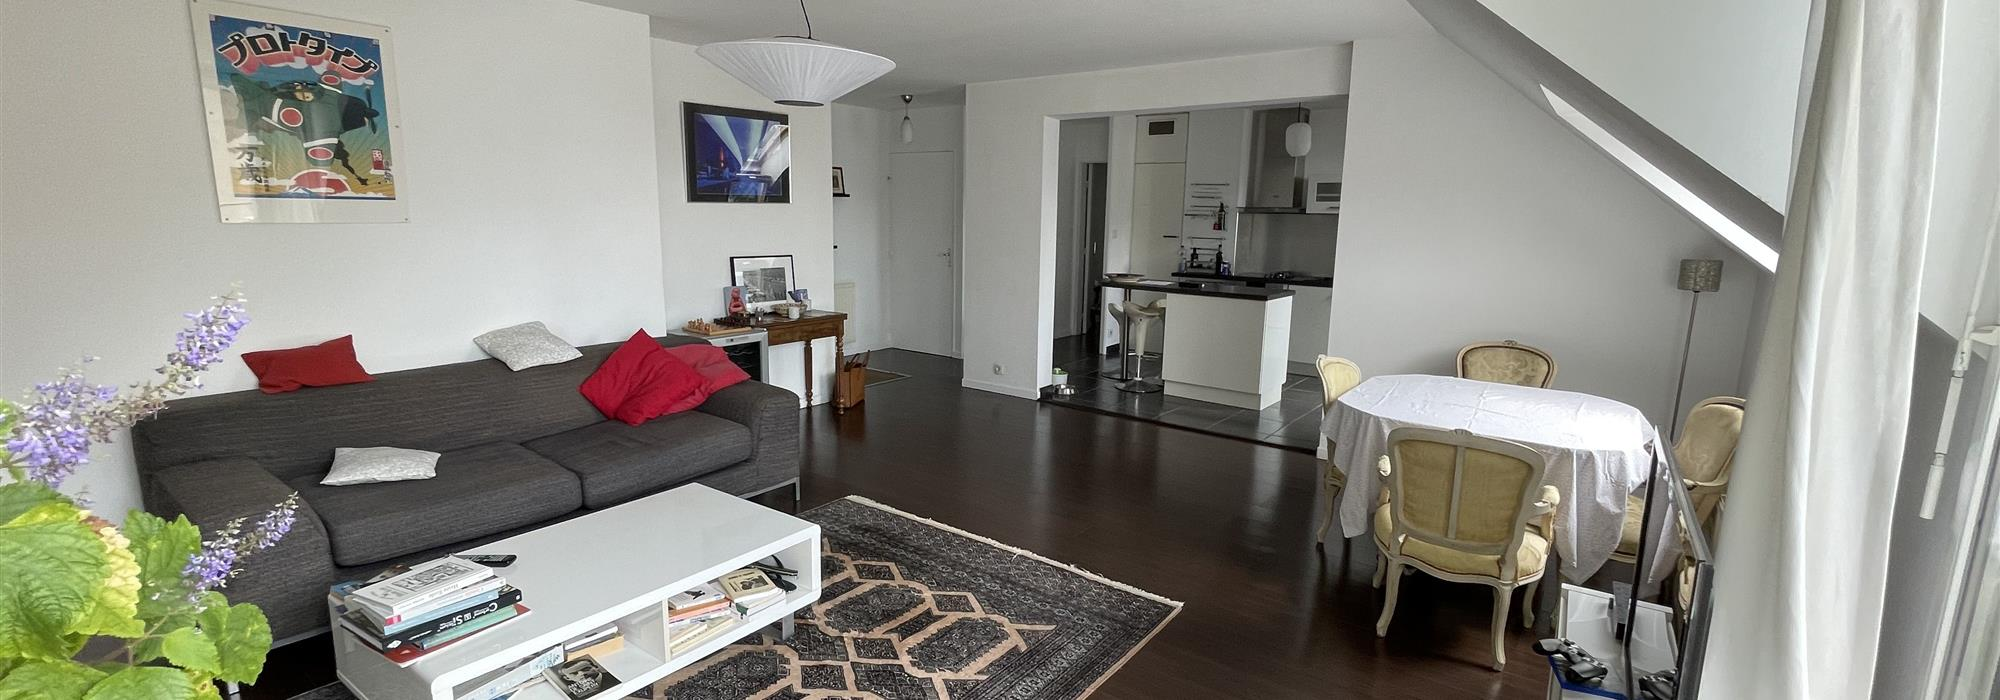 Appartement T3 Rennes Nord St Martin